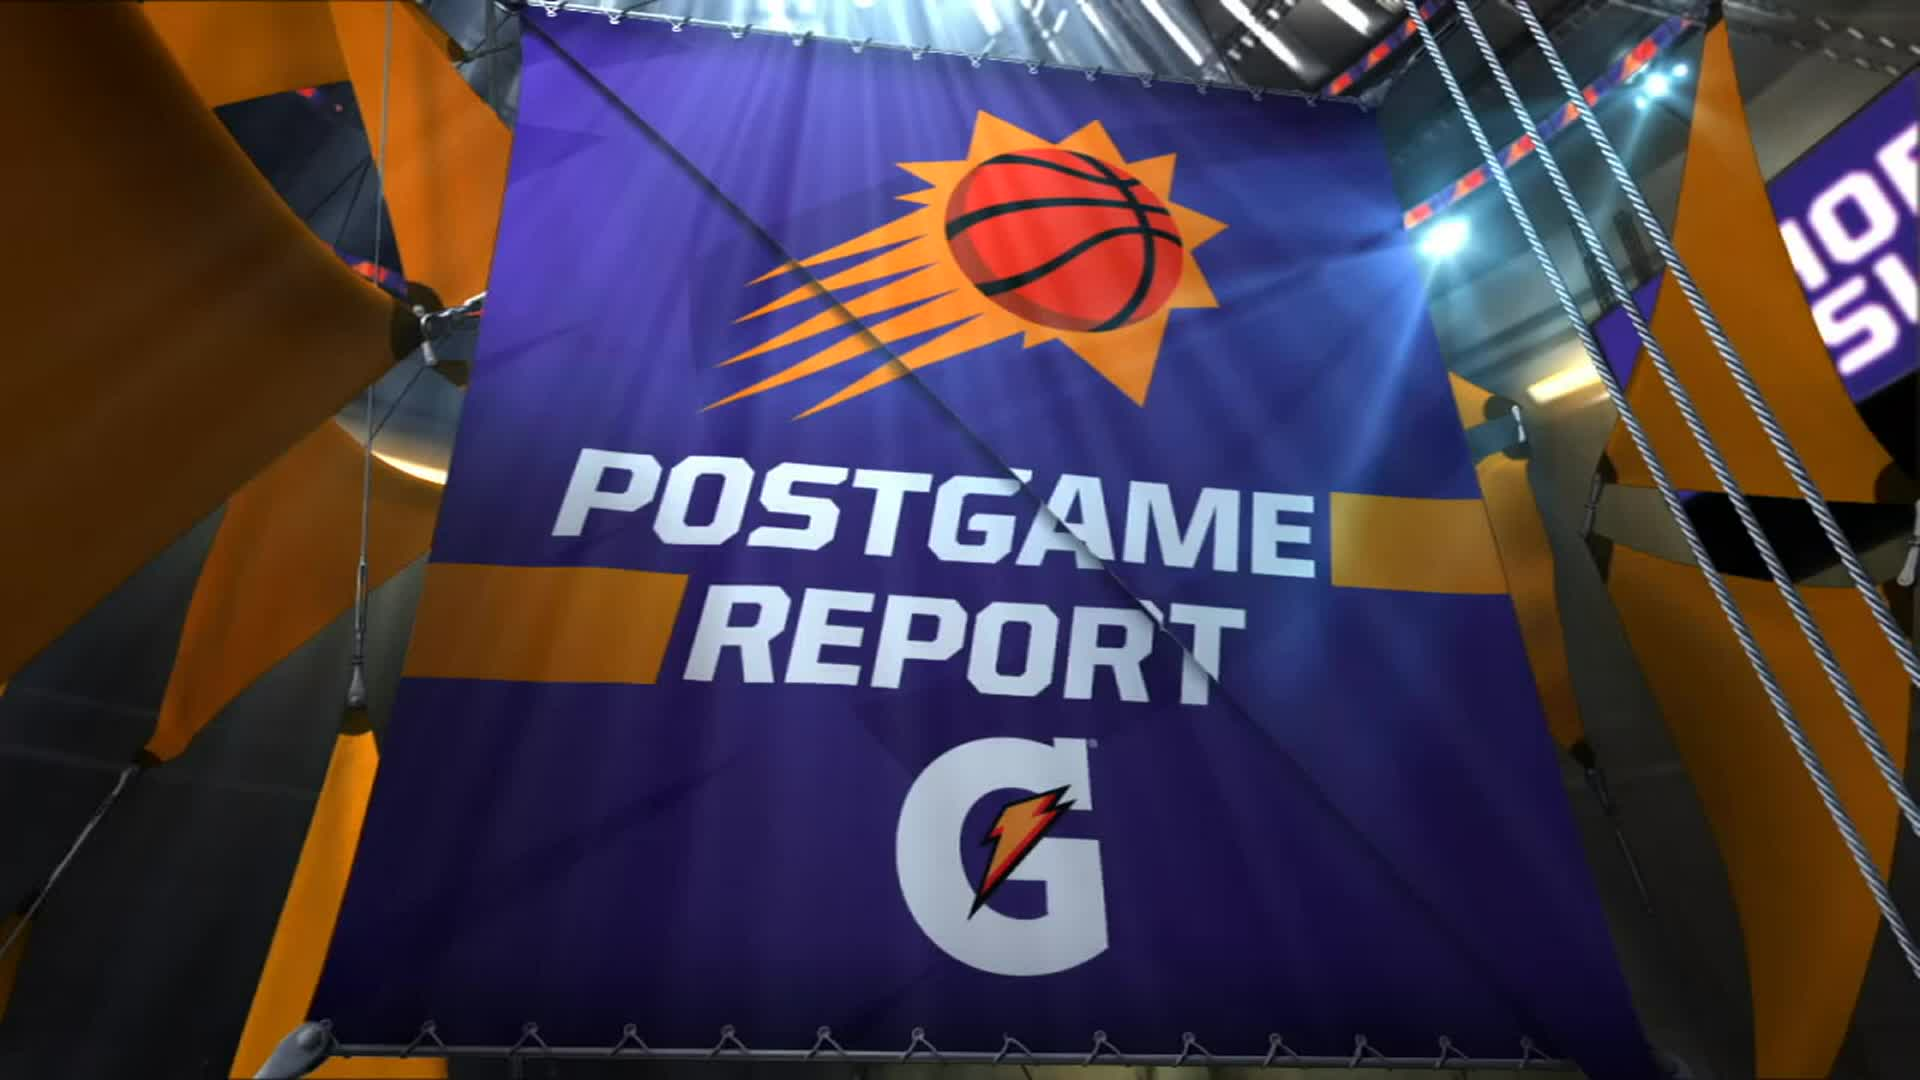 Gatorade Postgame Report: Suns vs. Spurs 2020-21